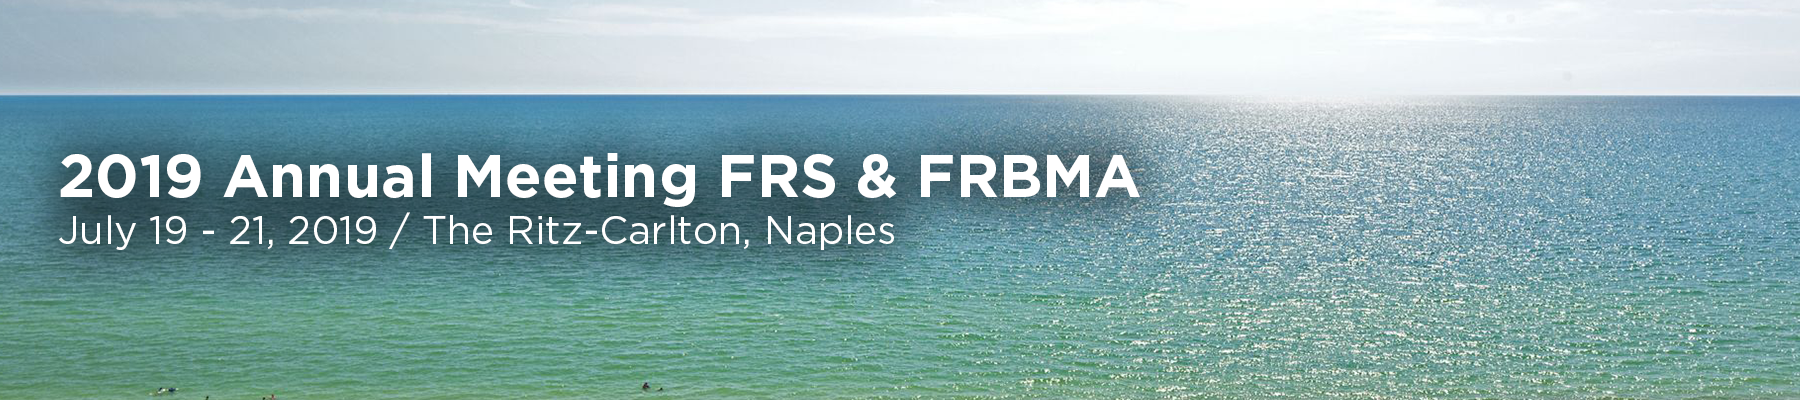 FRS FRBMA 2019 - Landing Page - Full Width